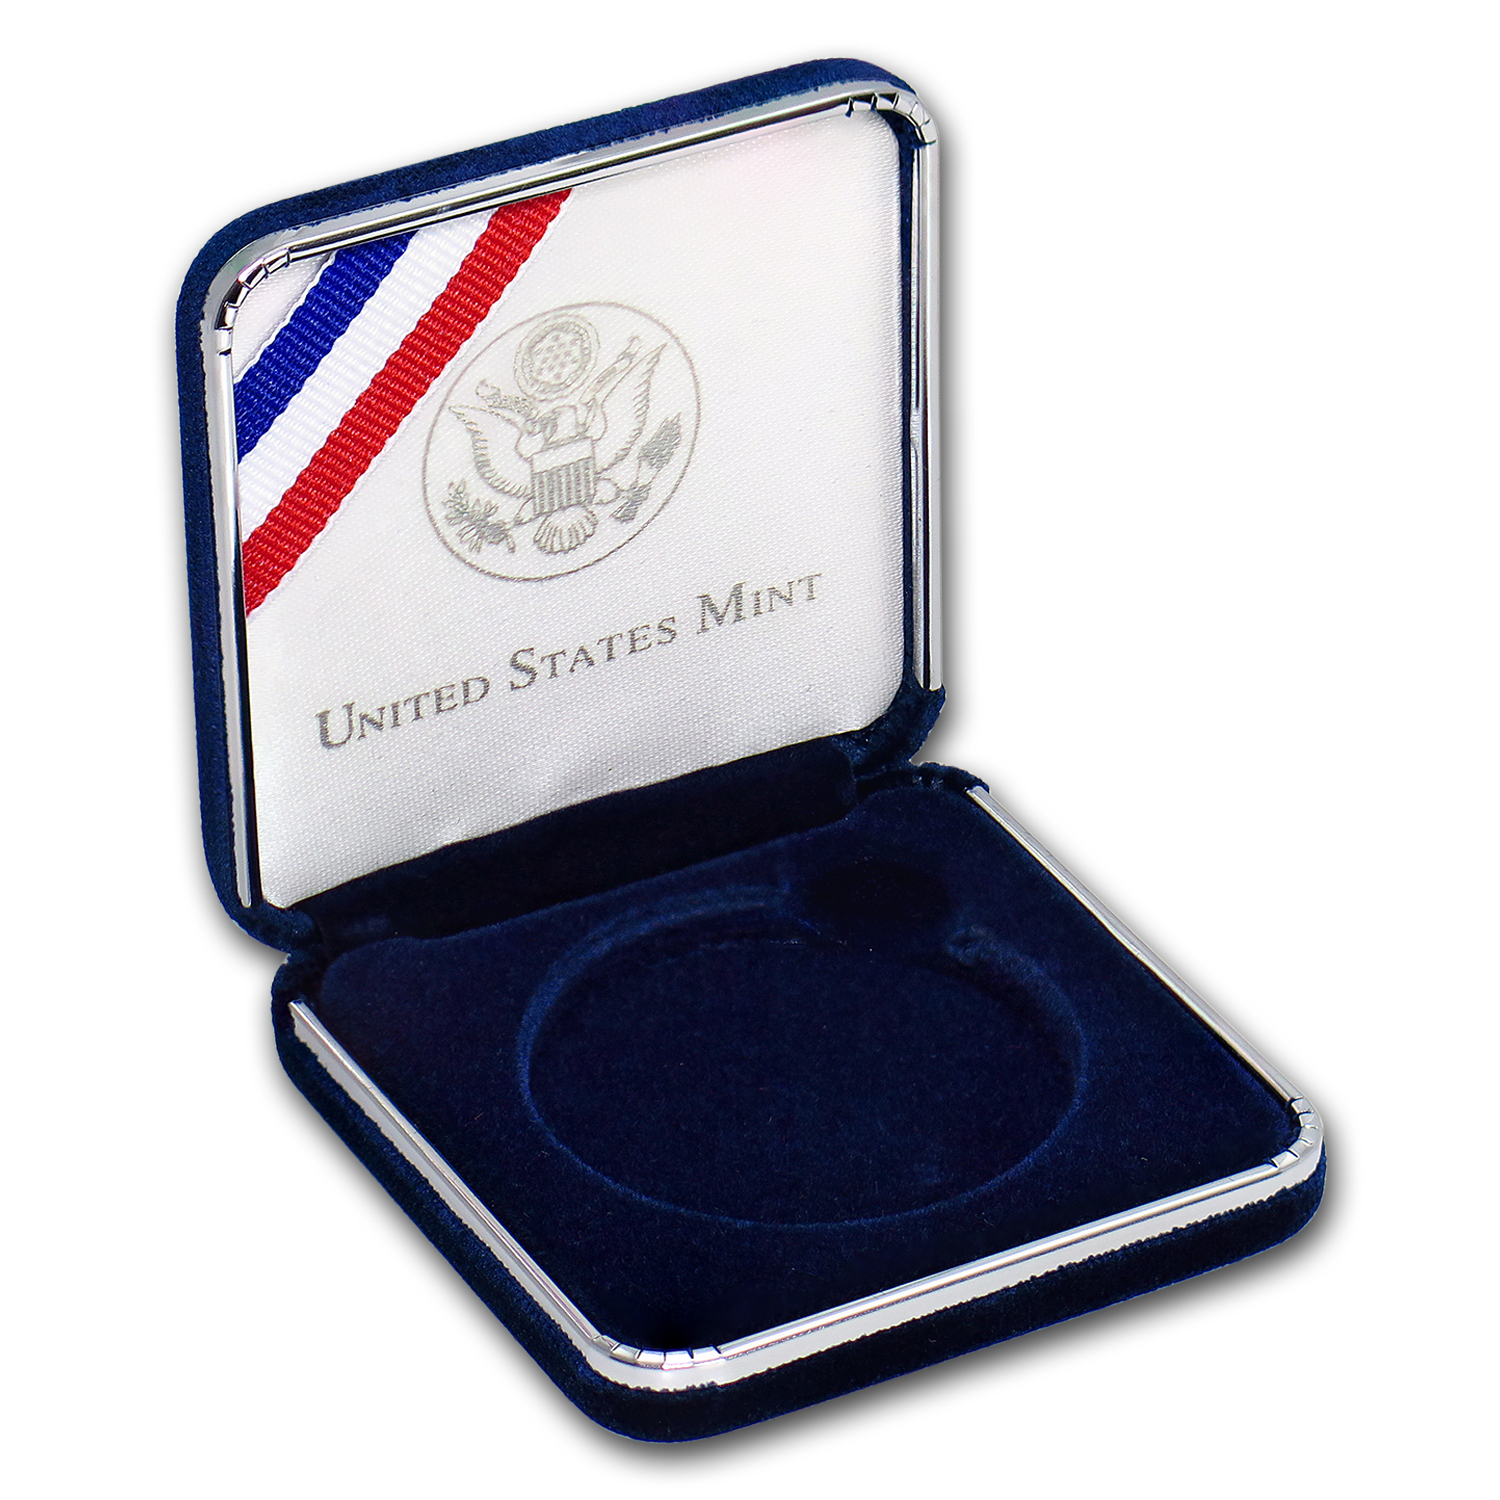 OGP Box & COA - 2011-P Medal of Honor $1 Silver Commem Proof Coin